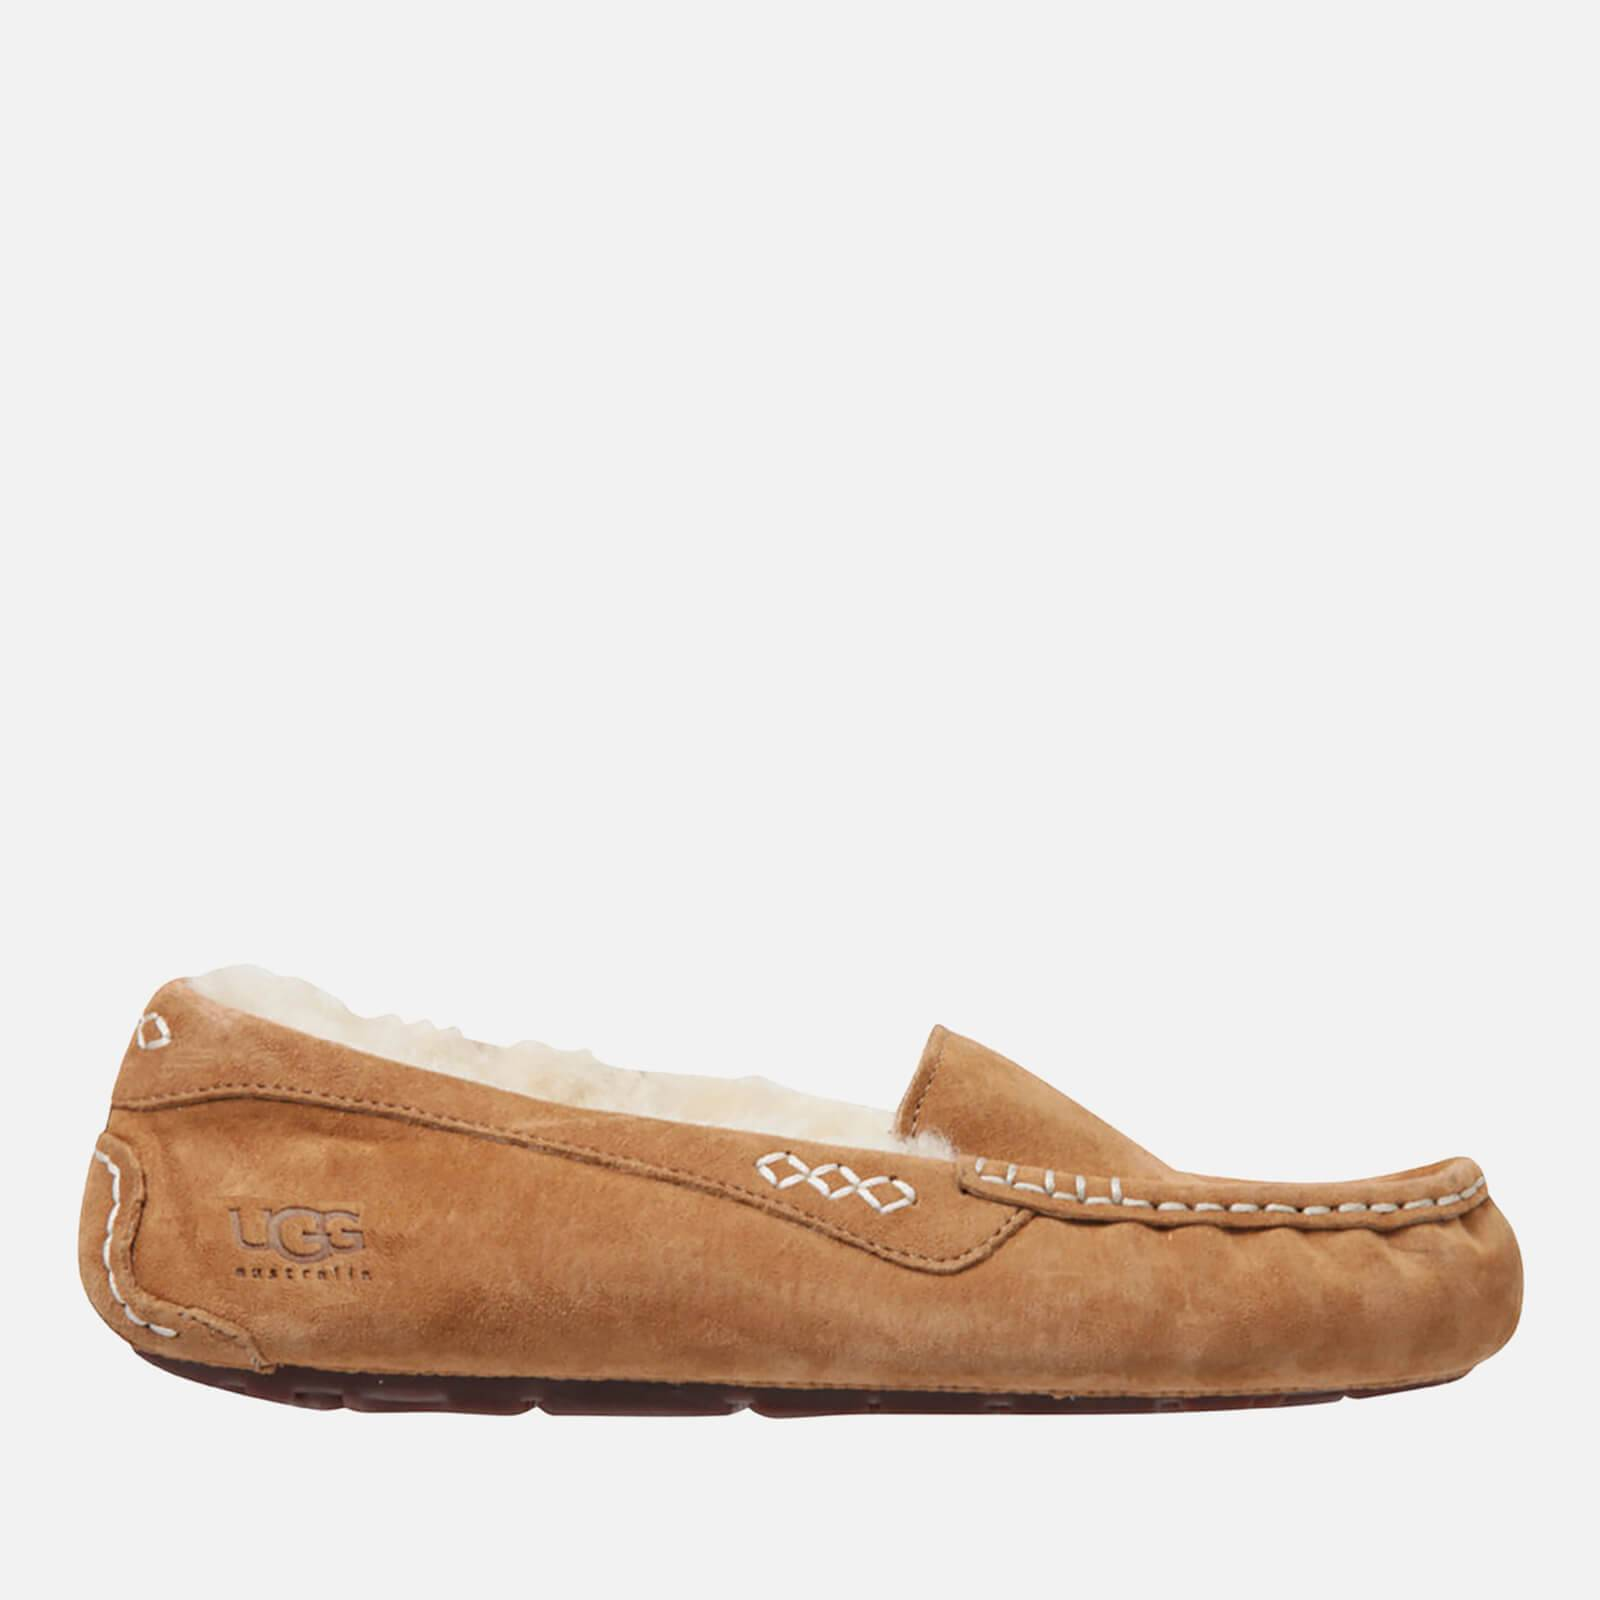 UGG Women's Ansley Moccasin Suede Slippers - Chestnut - UK 6